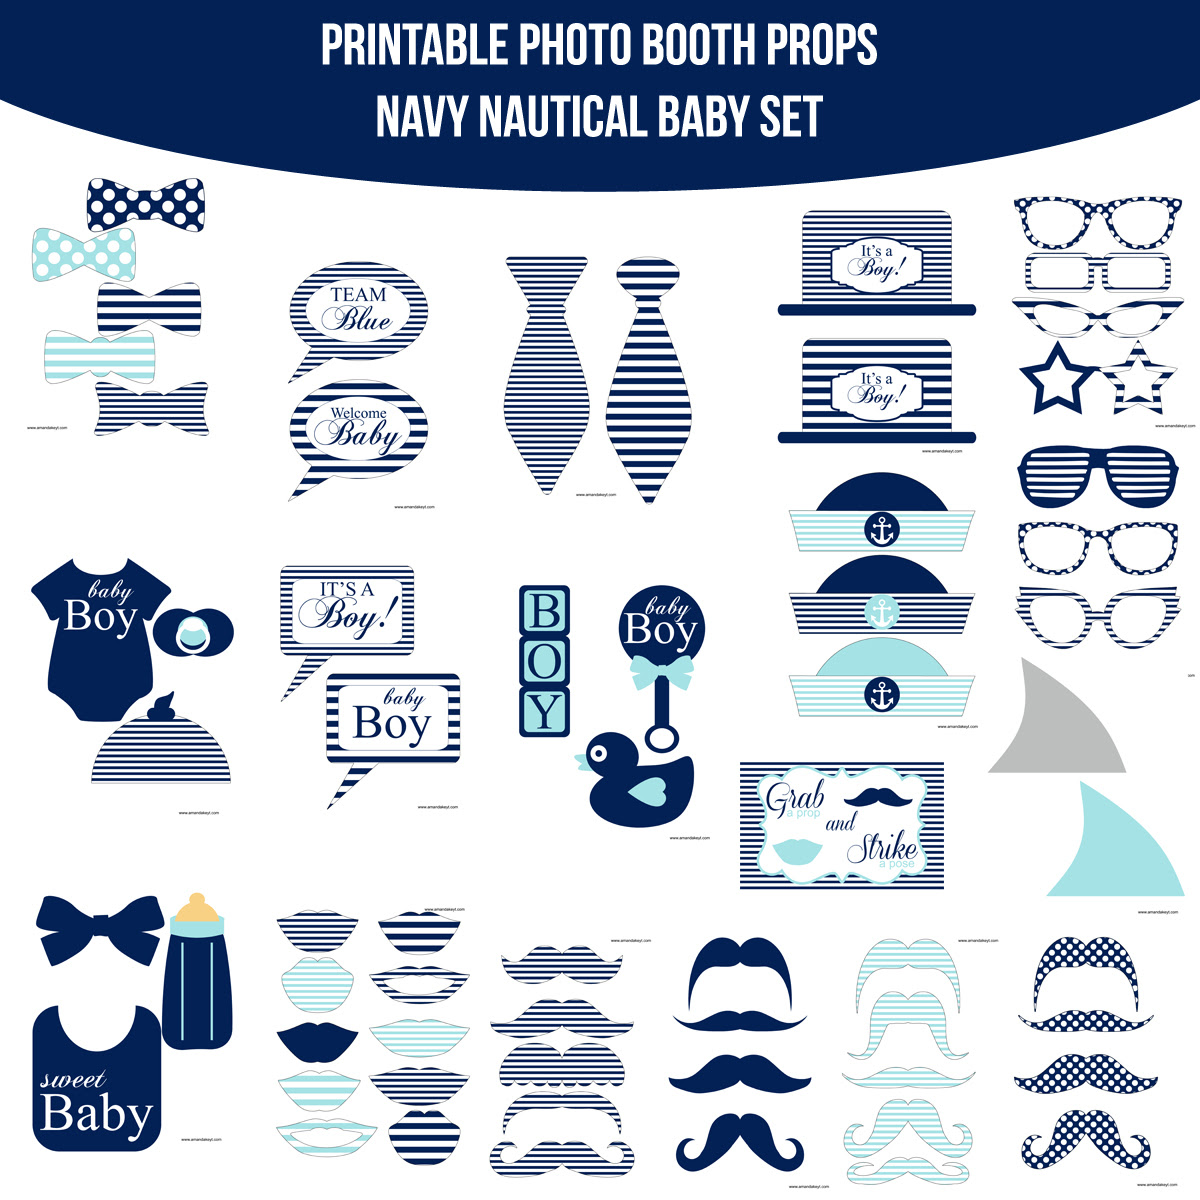 New Nautical Props For Photo Booth